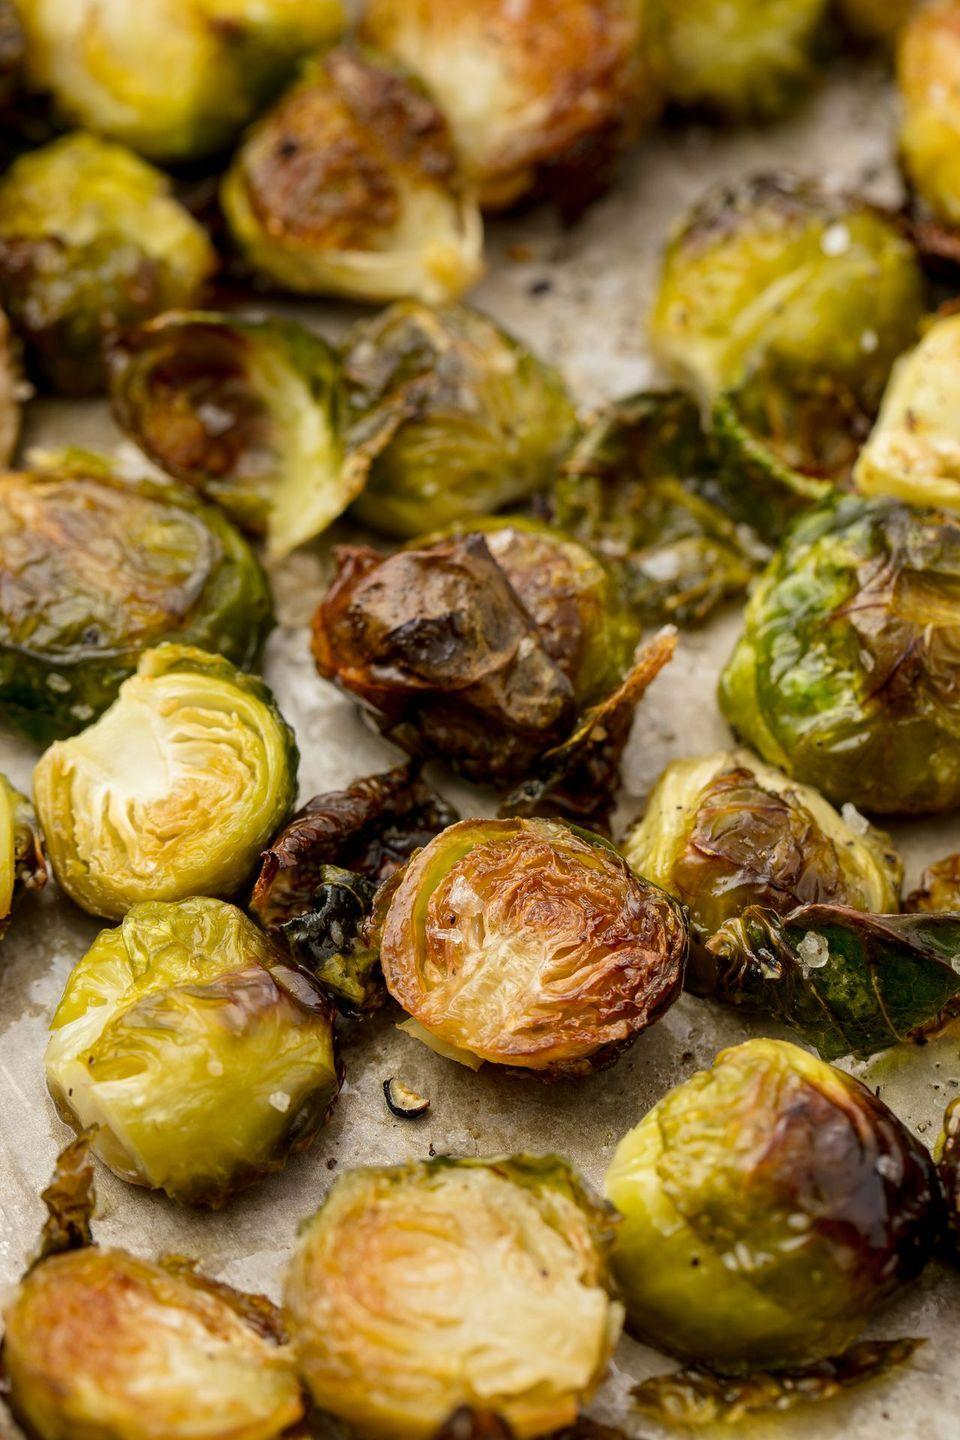 "<p>Here's how to get the perfect crispy edges. </p><p>Get the recipe from <a href=""https://www.delish.com/cooking/recipe-ideas/a55335/best-roasted-brussel-sprouts-recipe/"" rel=""nofollow noopener"" target=""_blank"" data-ylk=""slk:Delish"" class=""link rapid-noclick-resp"">Delish</a>.</p>"